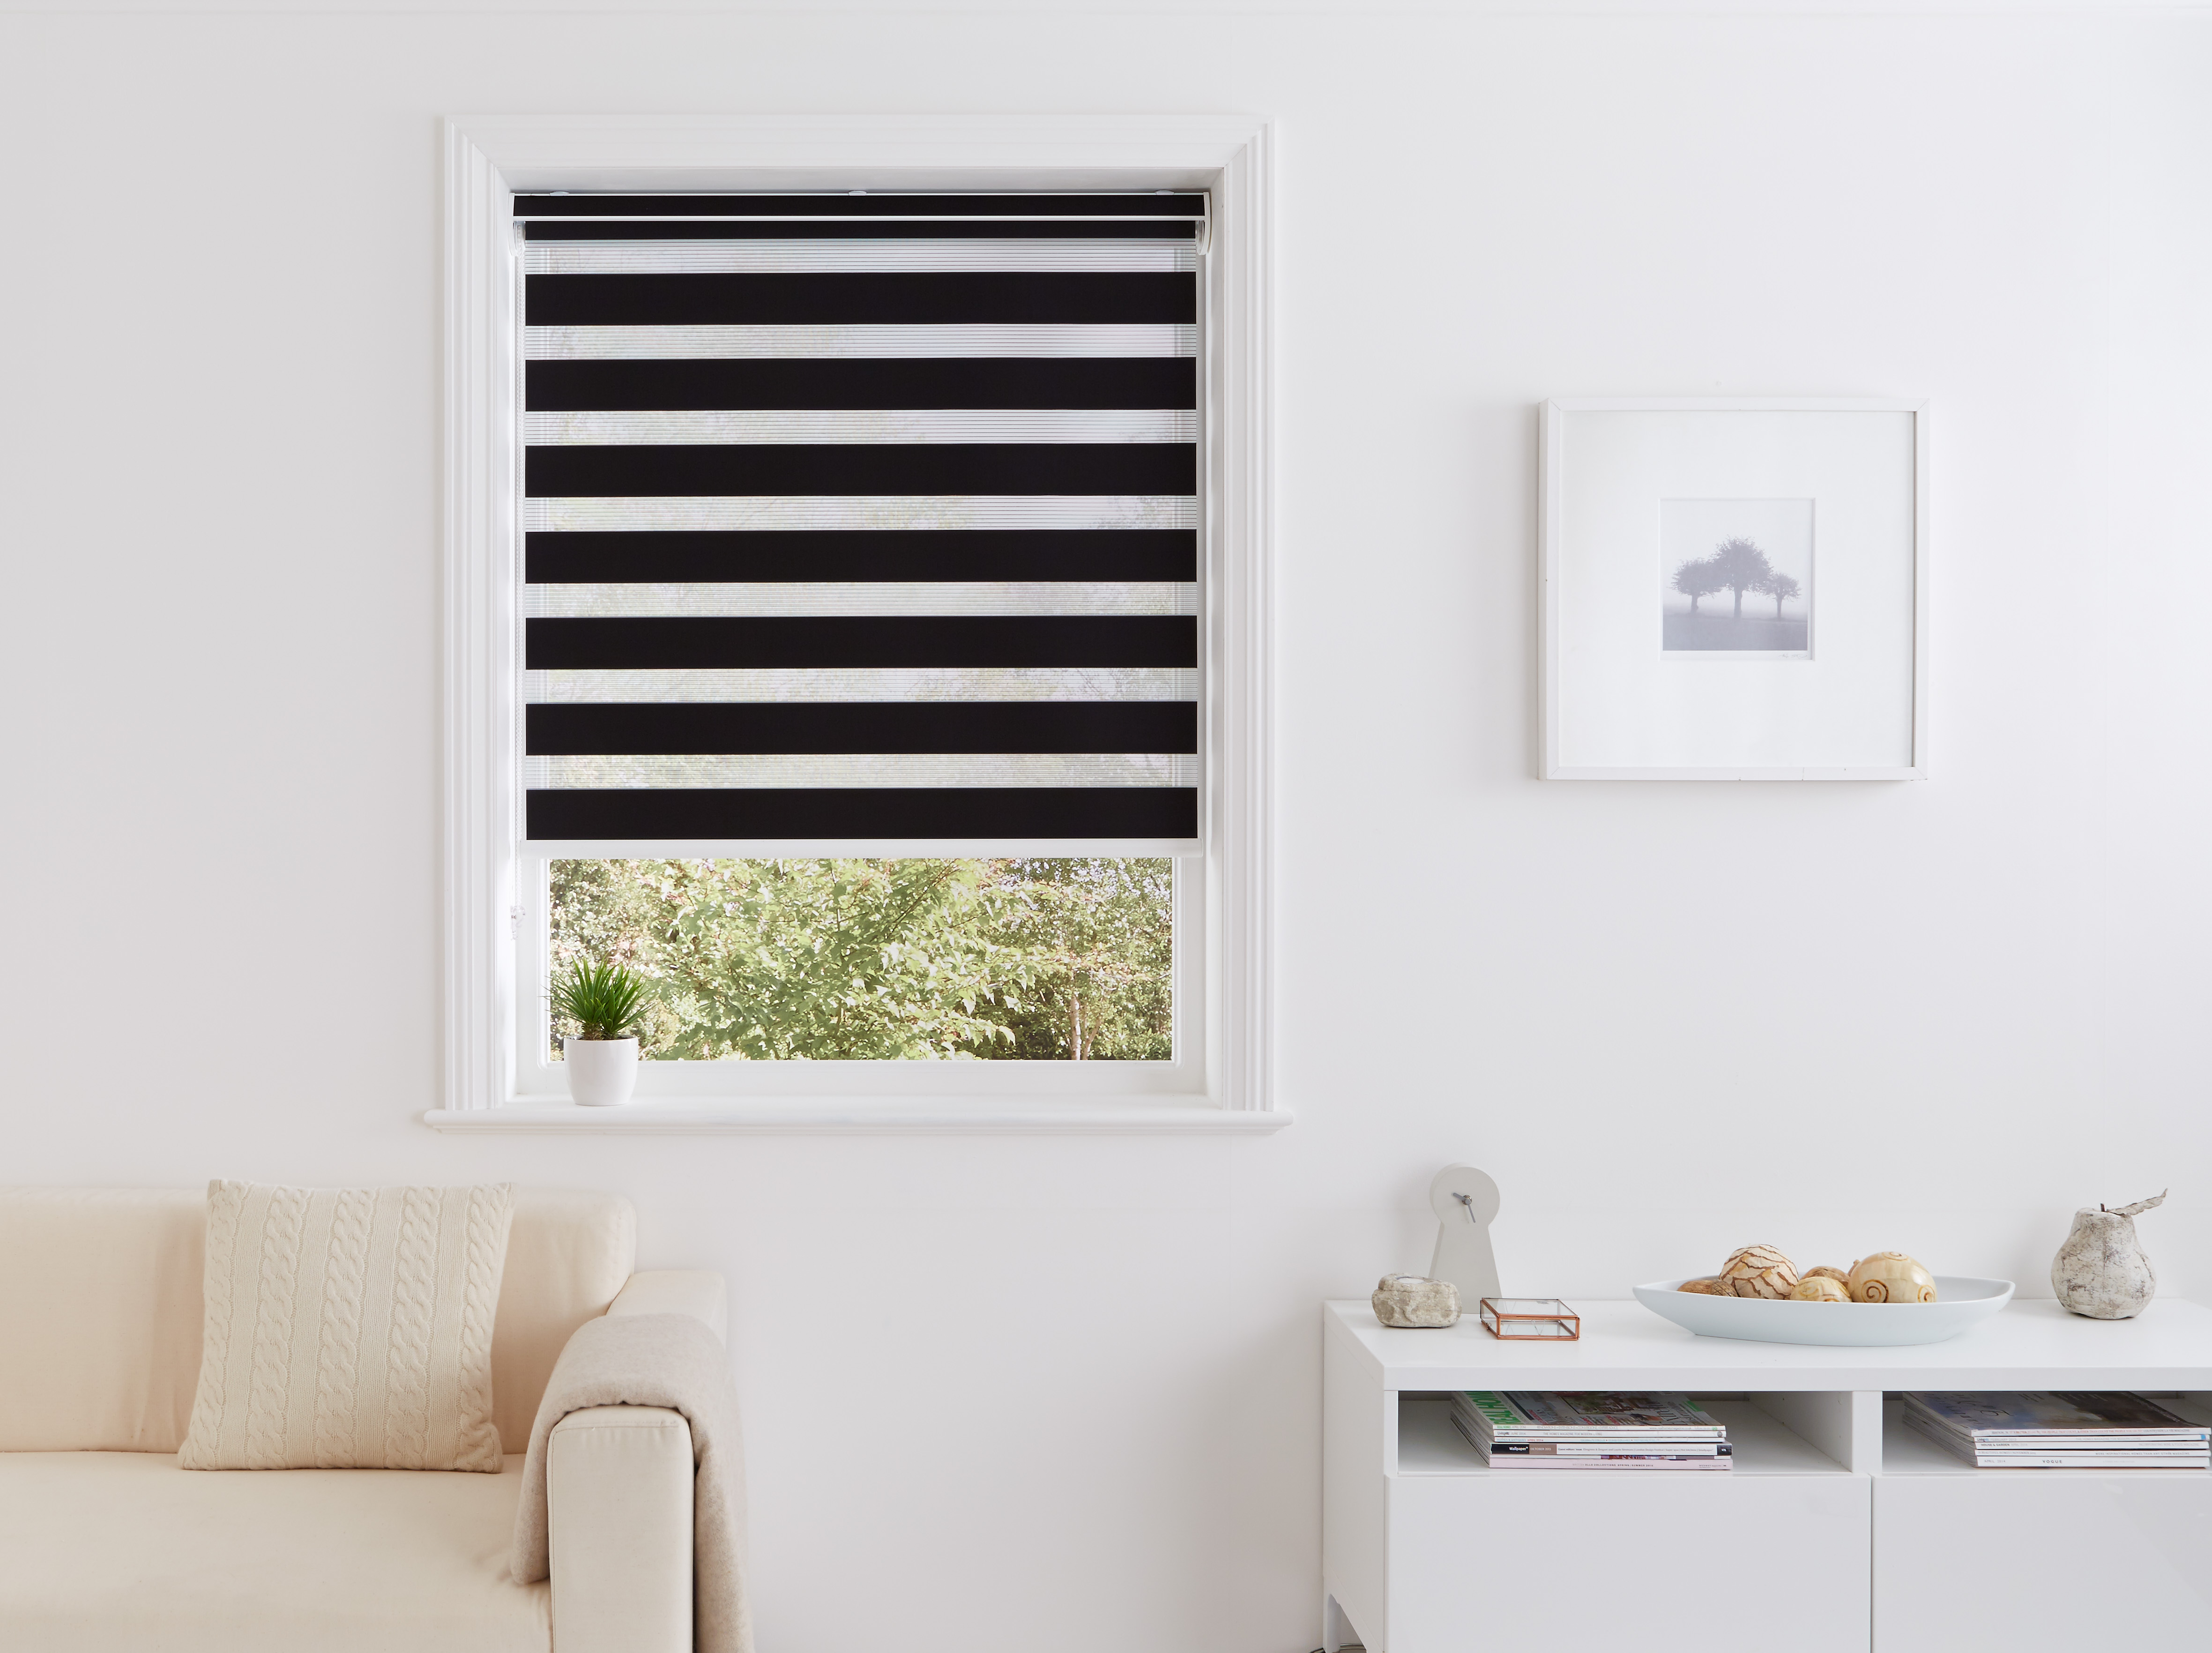 Day Night Roller Blinds